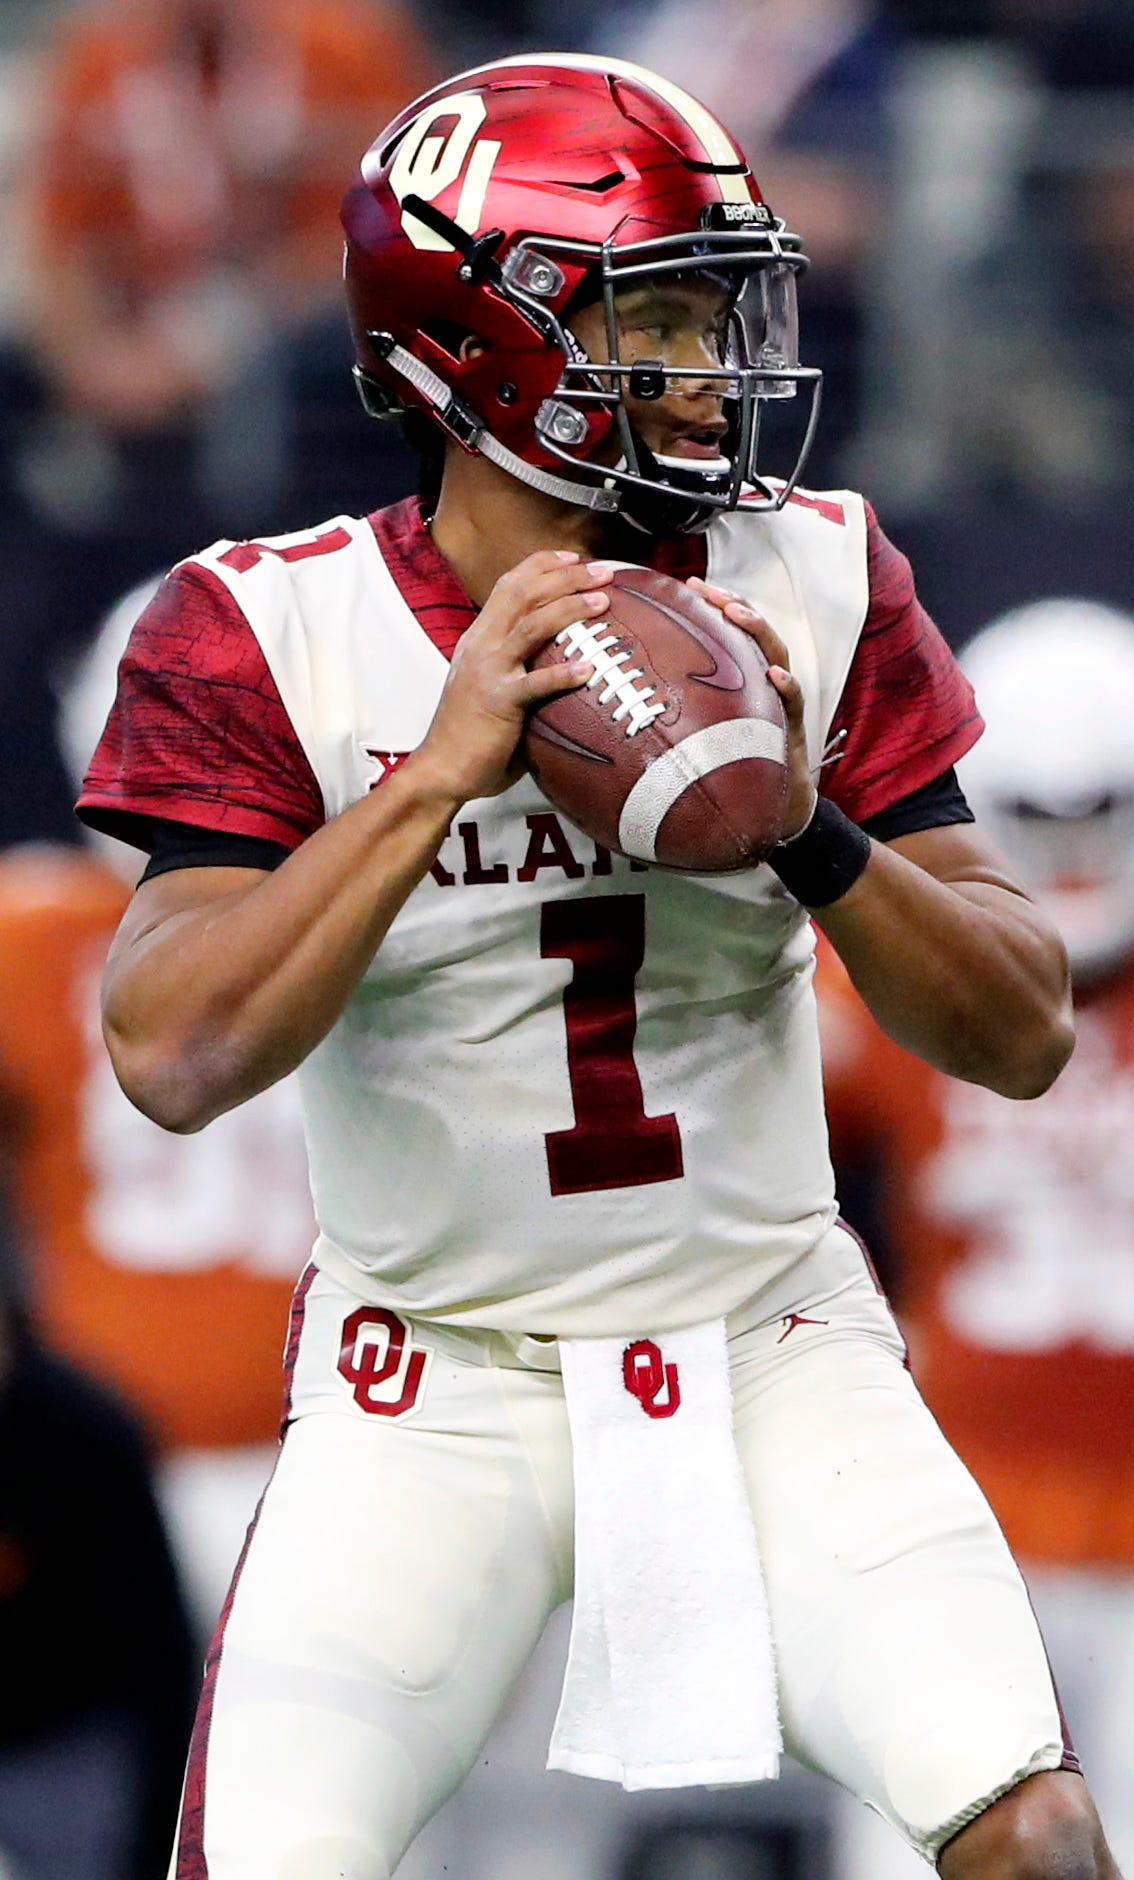 Kyler Murray in action against the Texas Longhorns in the Big 12 Championship.